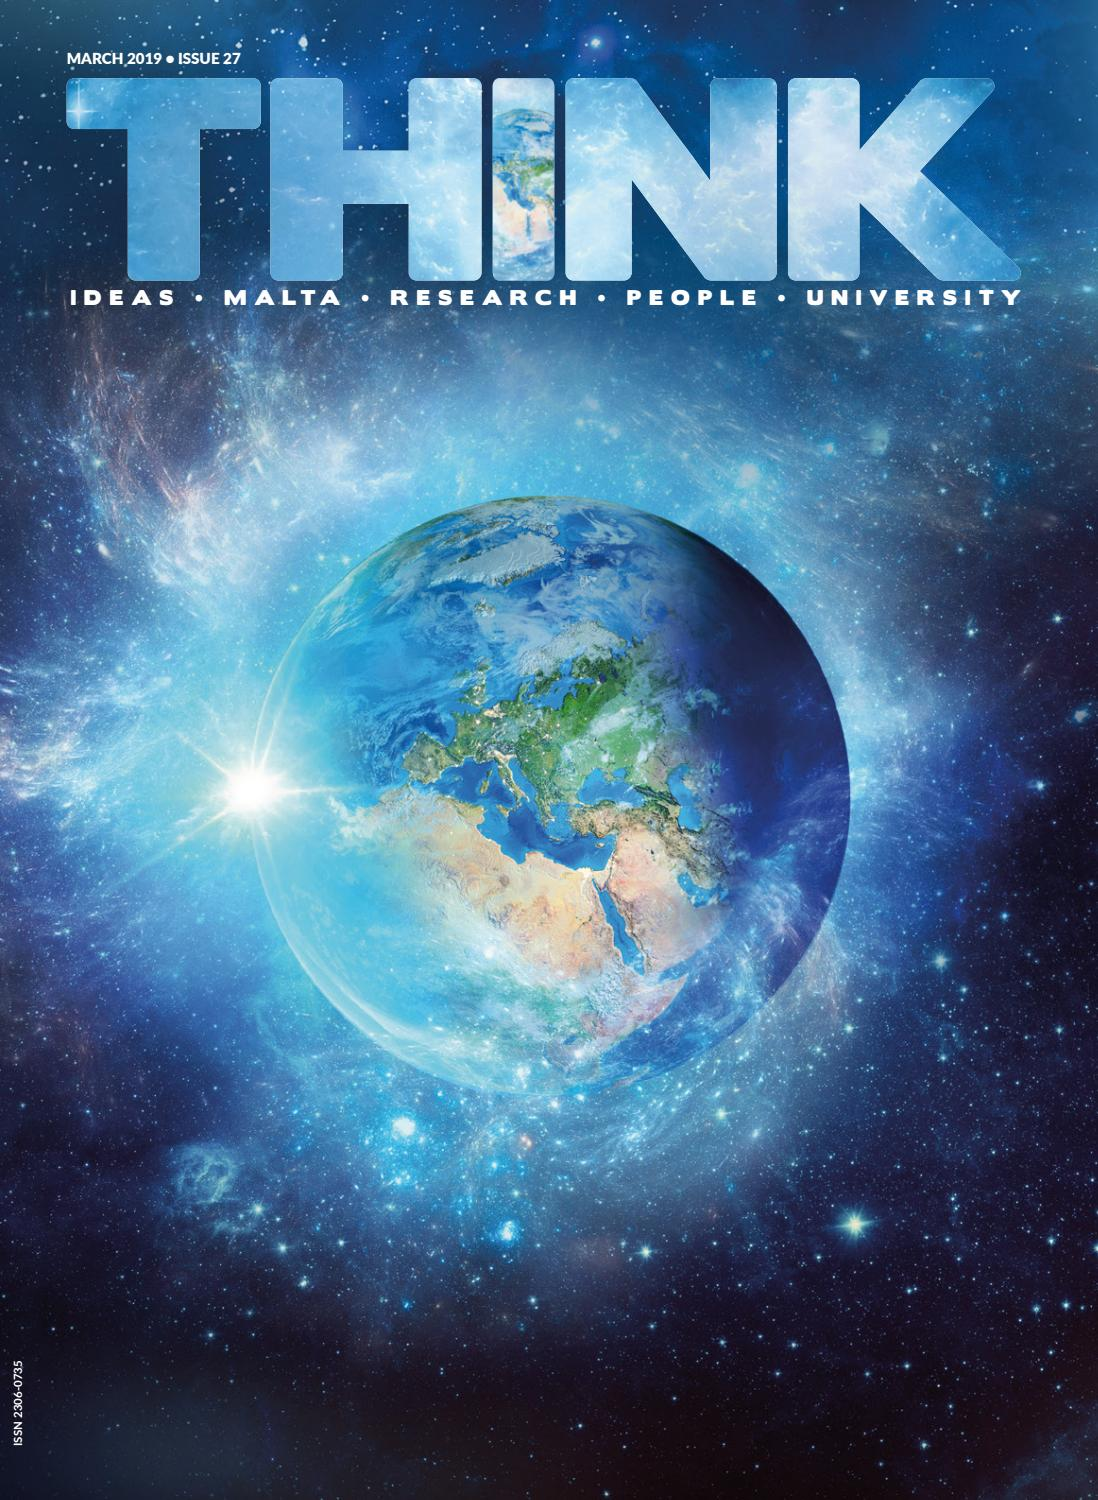 THINK - Issue 27 by Think - issuu